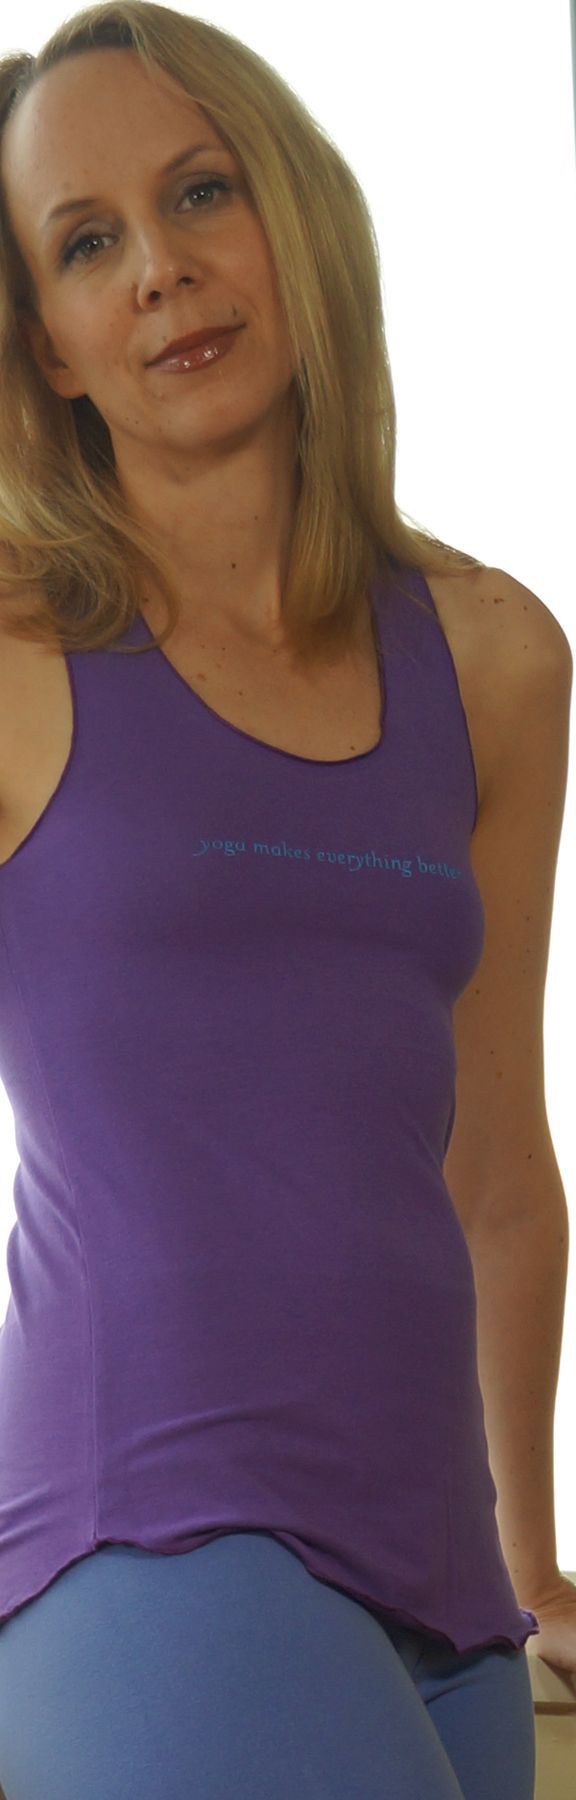 YOGA MAKES EVERYTHING BETTER ! http://squeezed.ca/shop/category/yoga-makes-everything-better